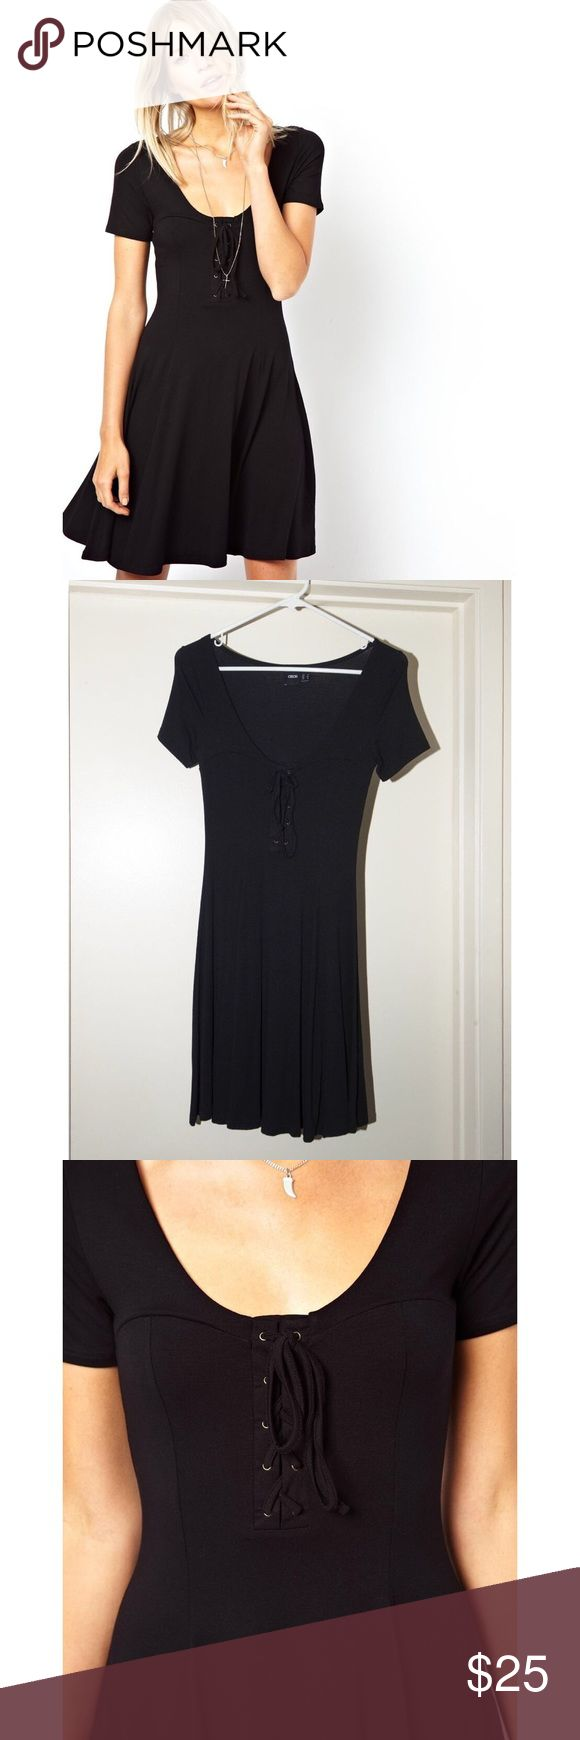 ASOS Black Skater Dress with Lace Up Detail Black lace up skater dress from ASOS, only worn once! Size 2 or XS/S. Super cute + comfy! ASOS Dresses Mini